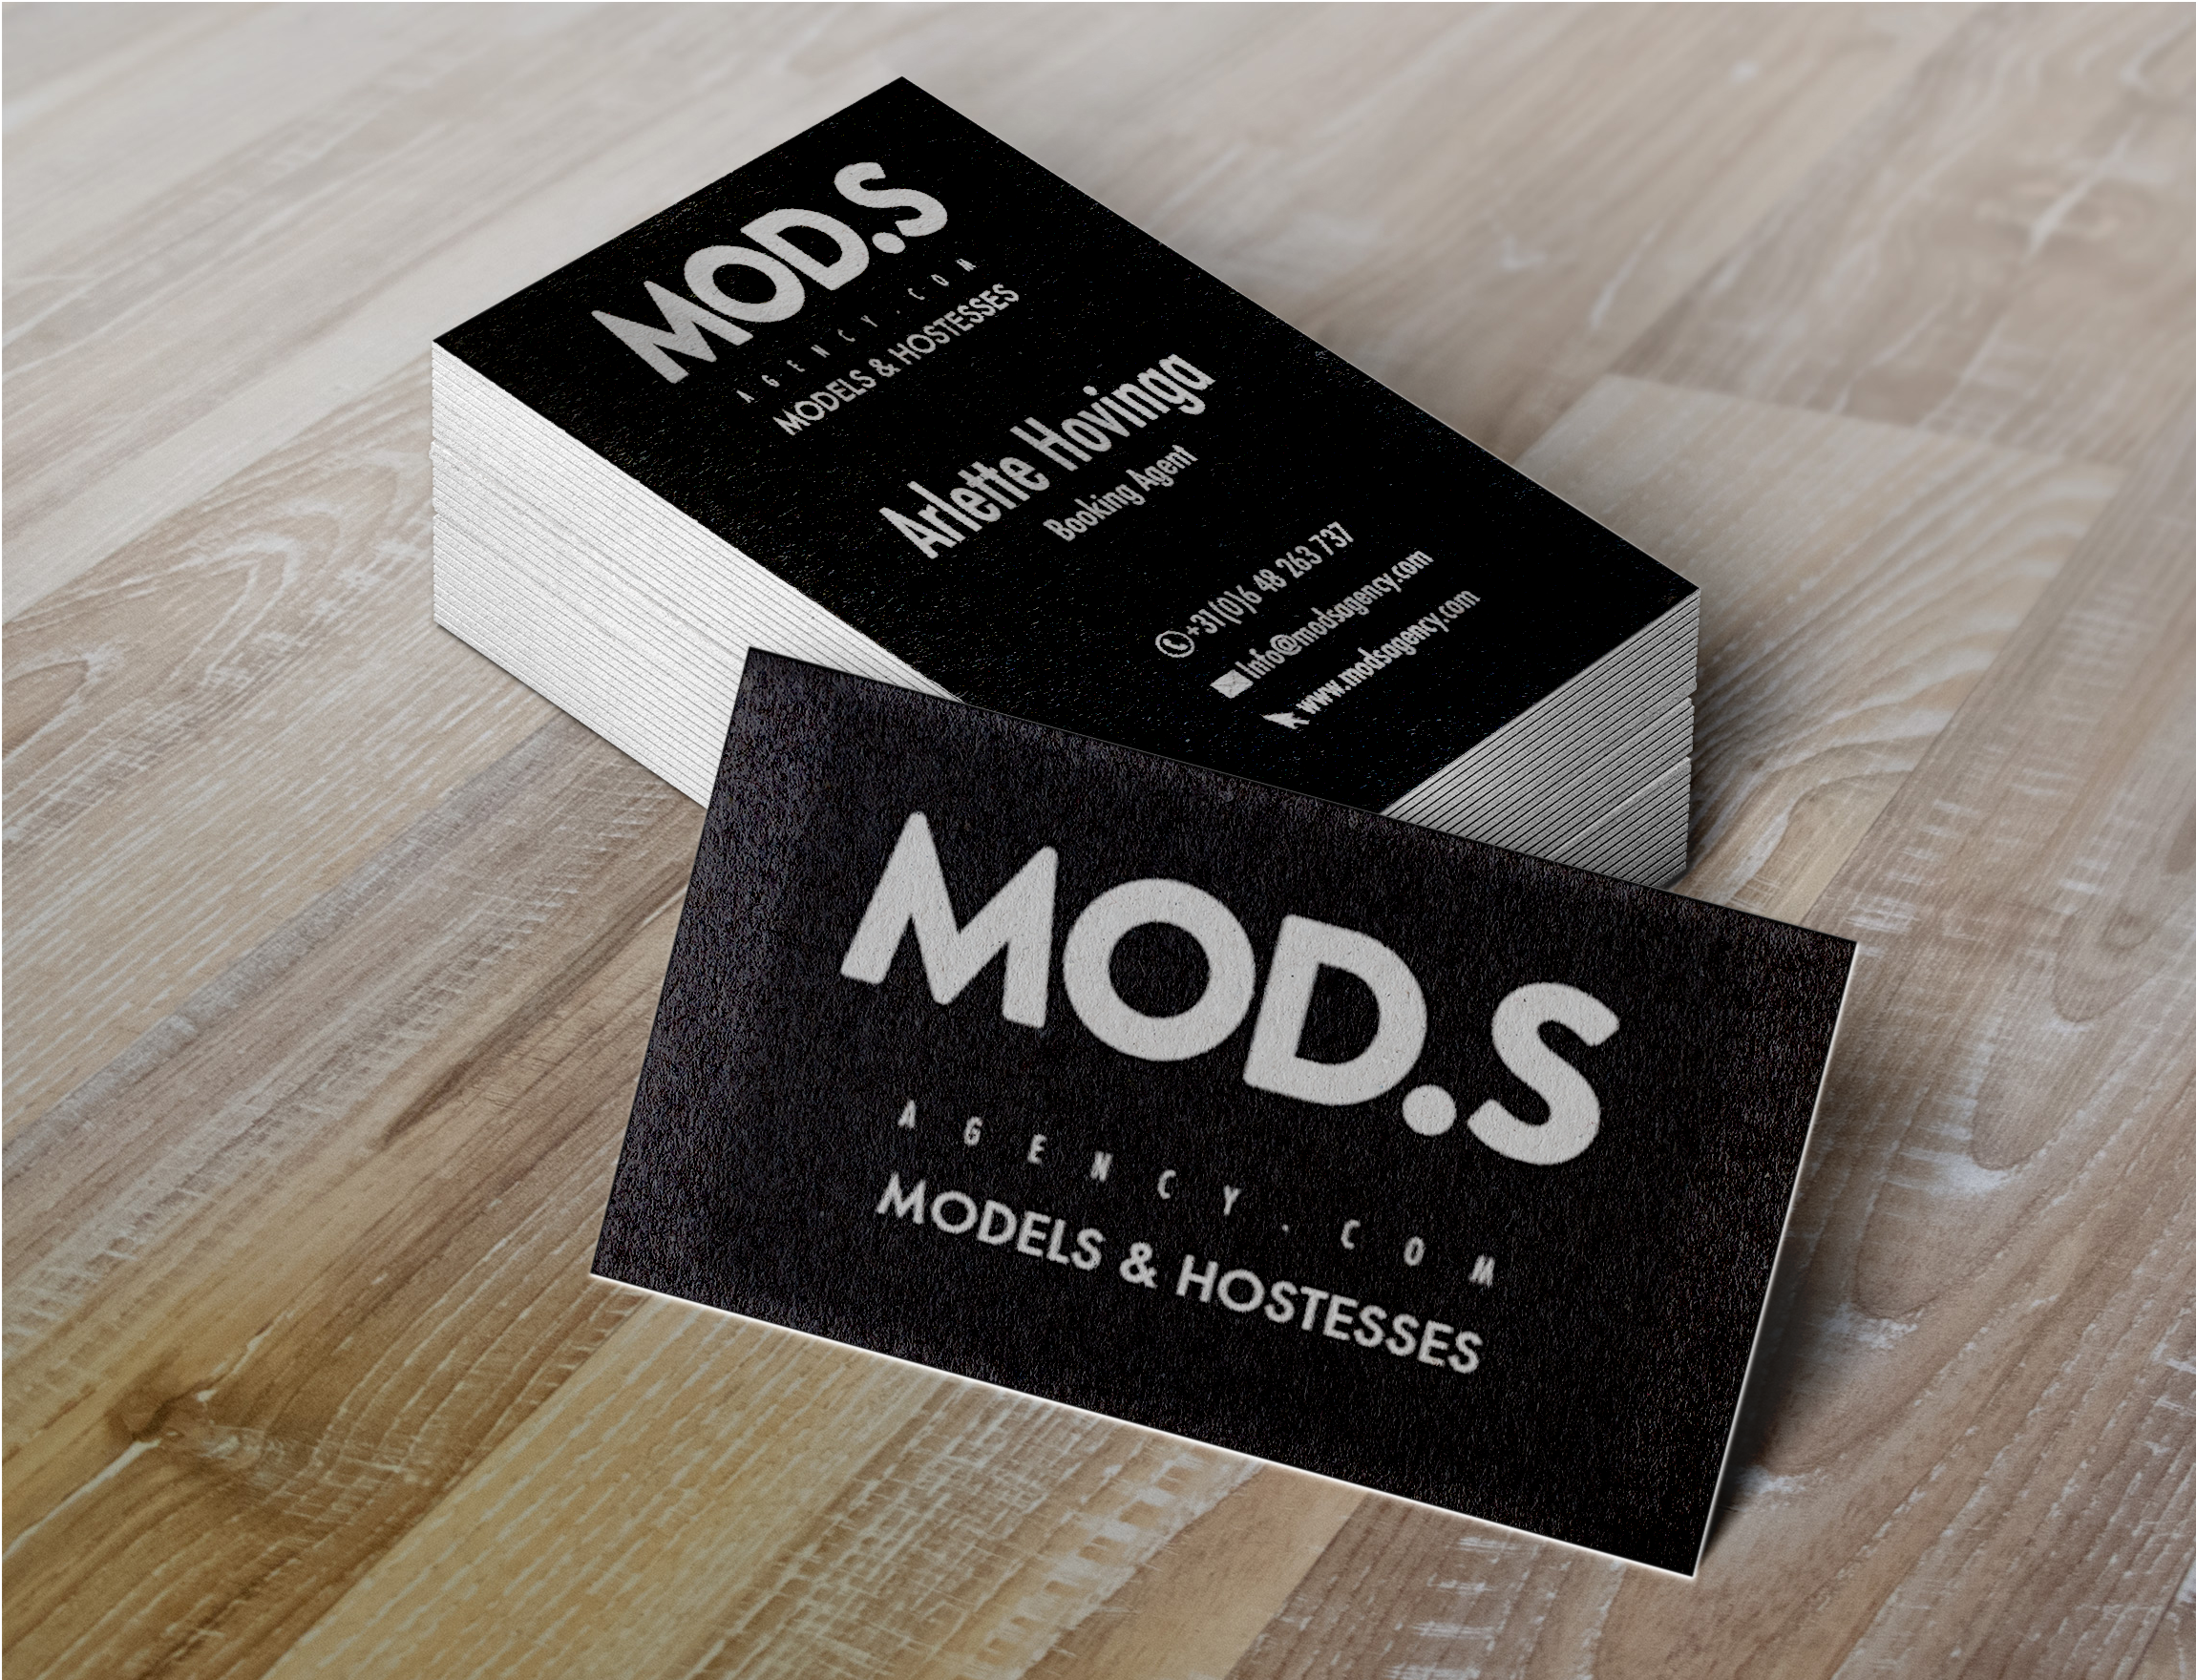 MODS Business card – terencephilippe